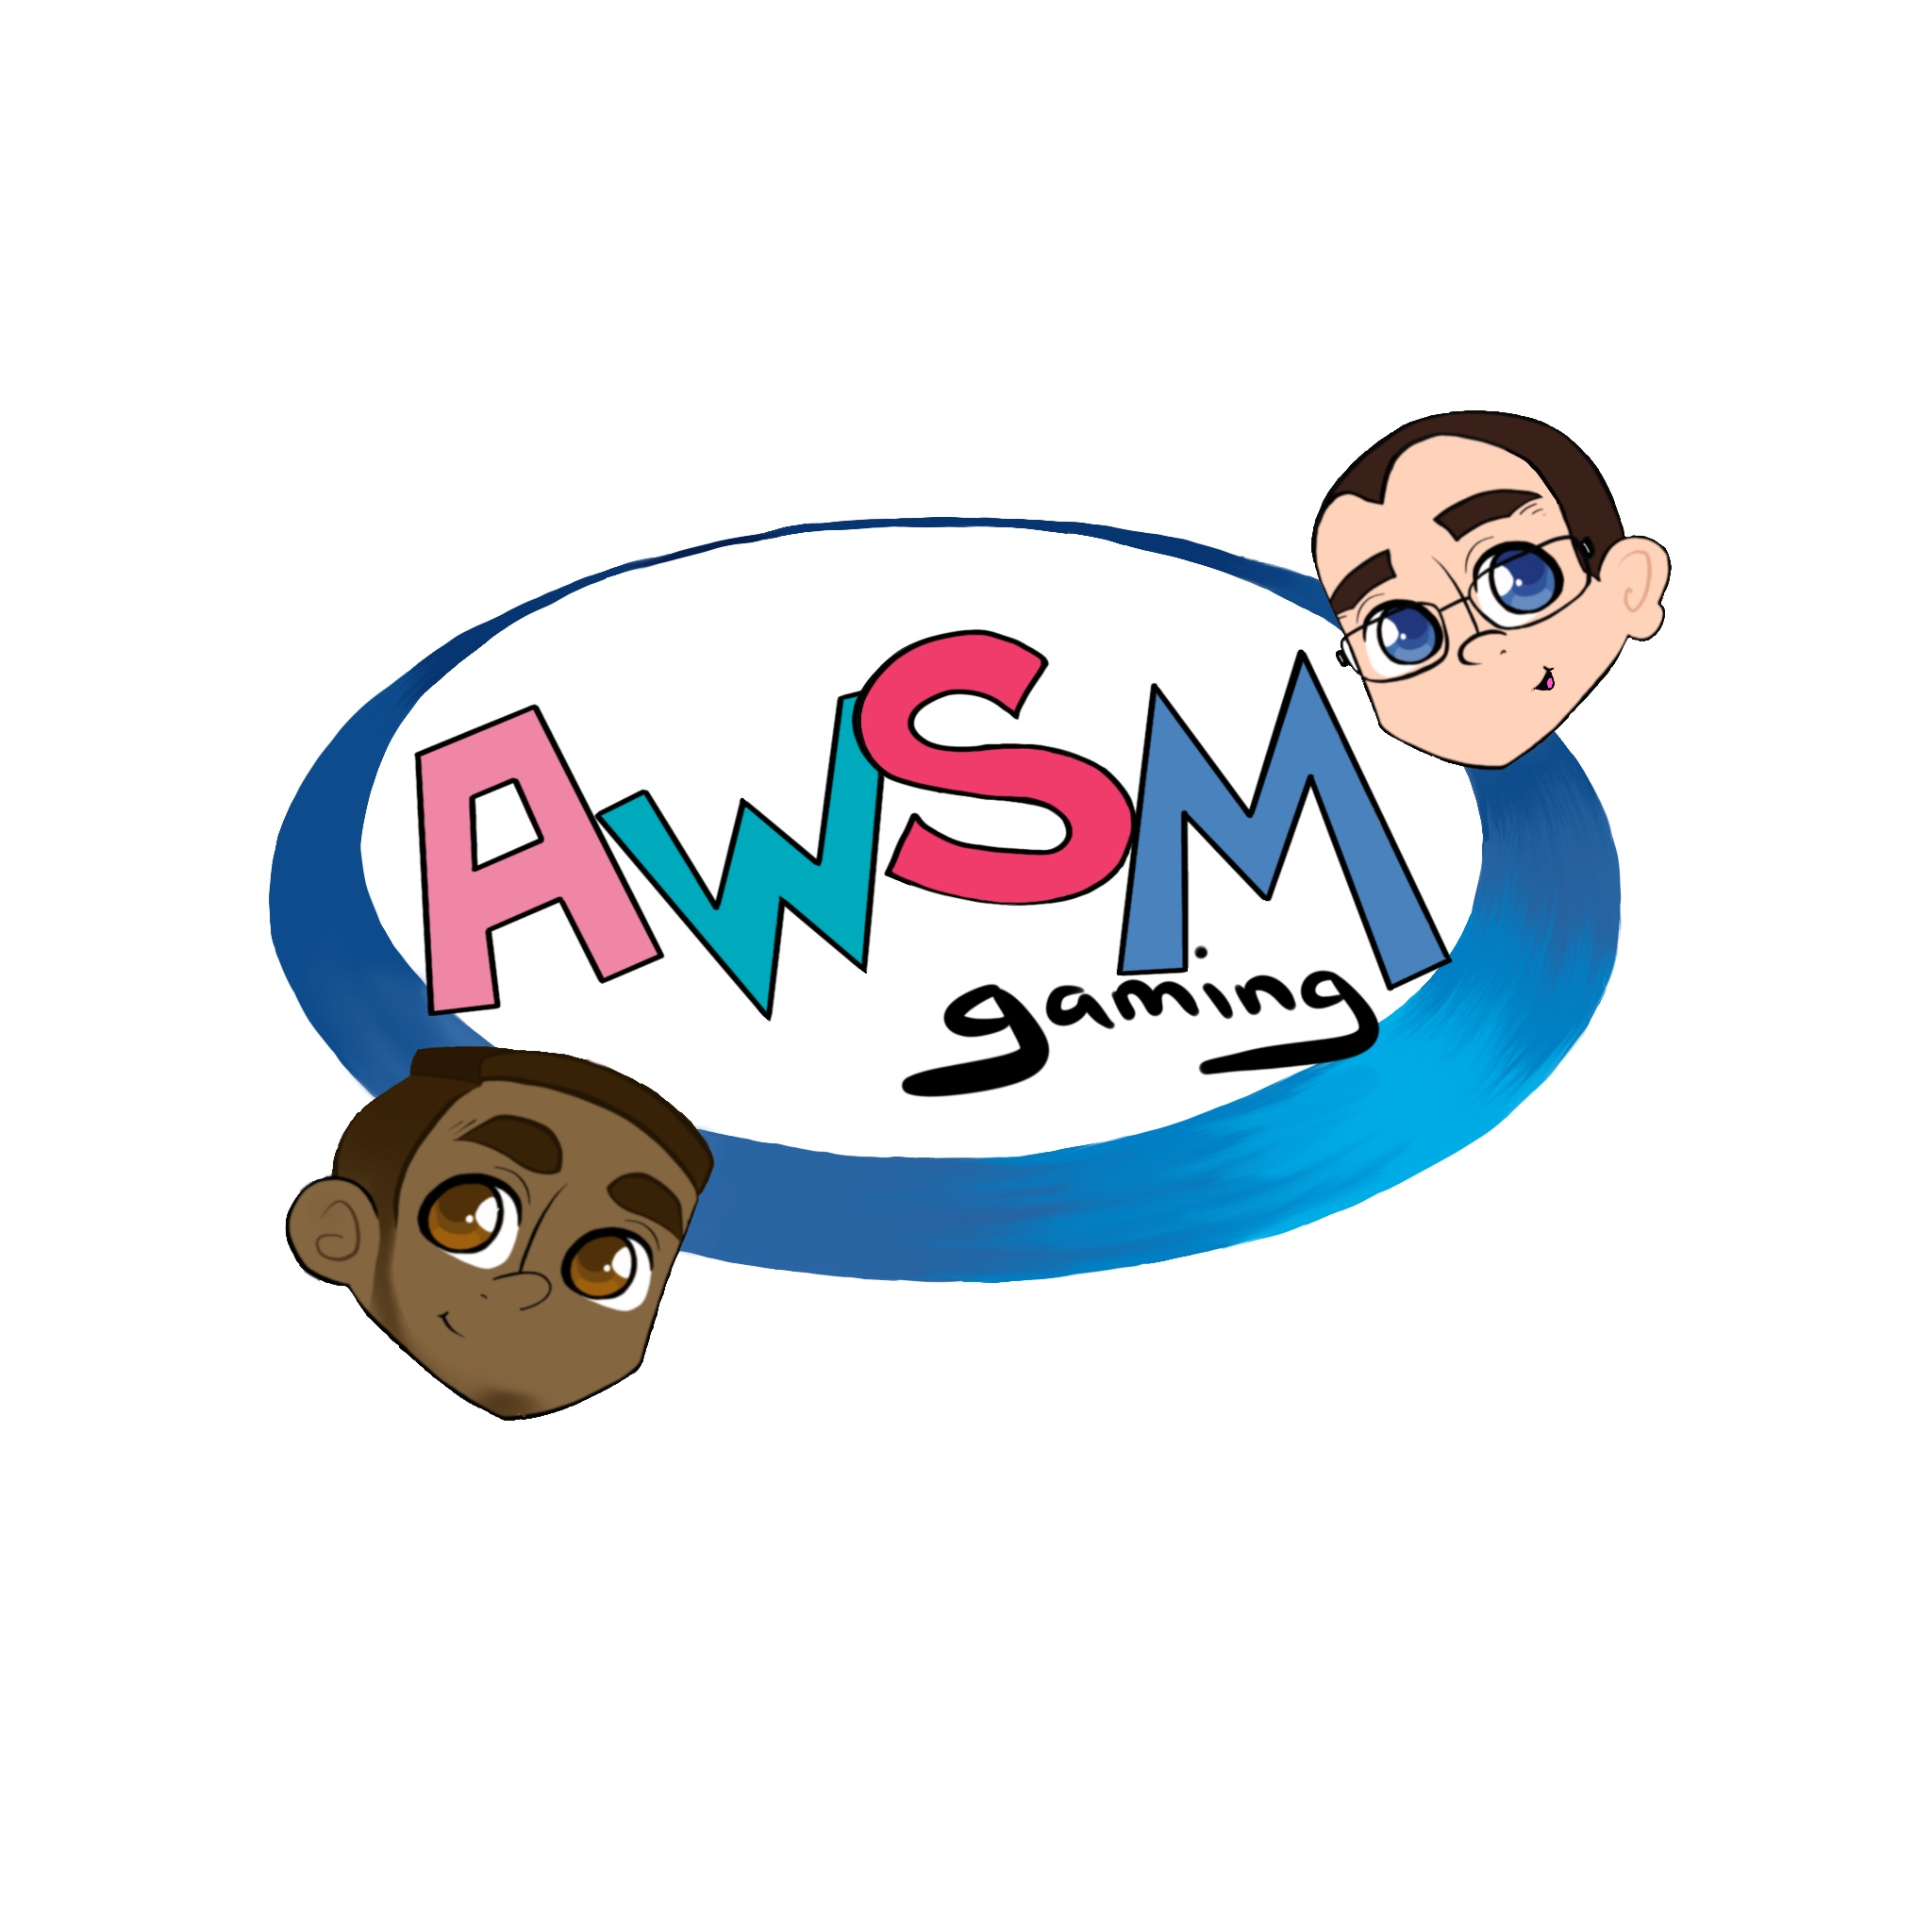 AWSM - Get it? Alex Wolfe and Stephen Marro! It's our initials! (Art by Rachael Cicci)